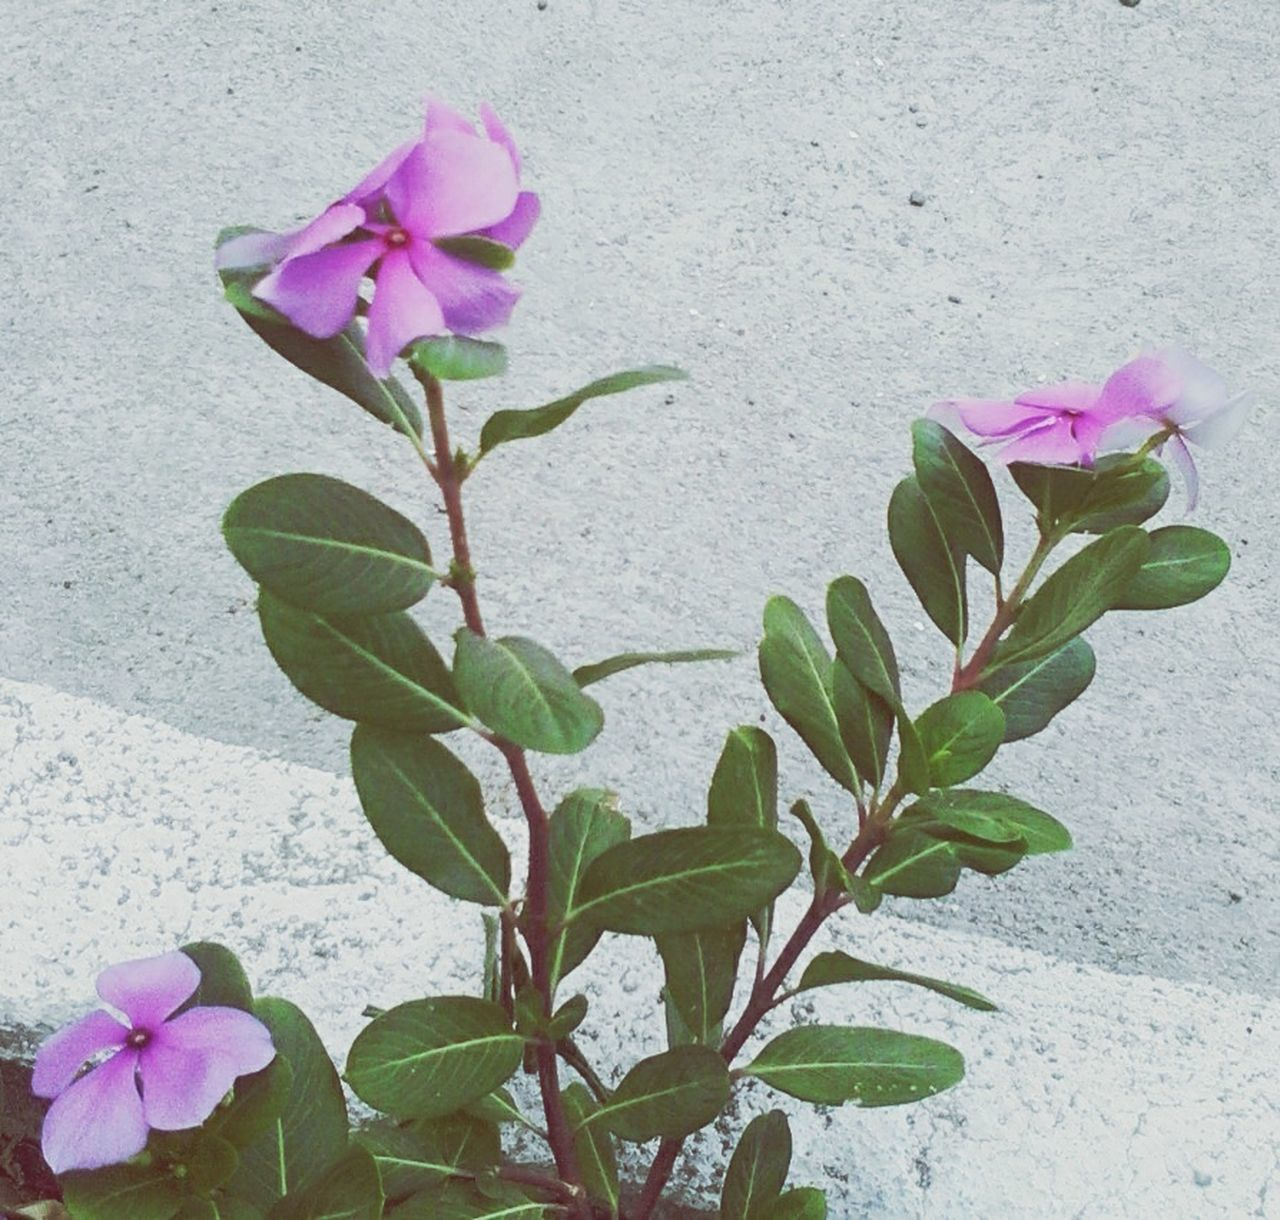 flower, petal, pink color, fragility, growth, nature, leaf, beauty in nature, freshness, flower head, purple, plant, blooming, periwinkle, no people, bougainvillea, close-up, day, outdoors